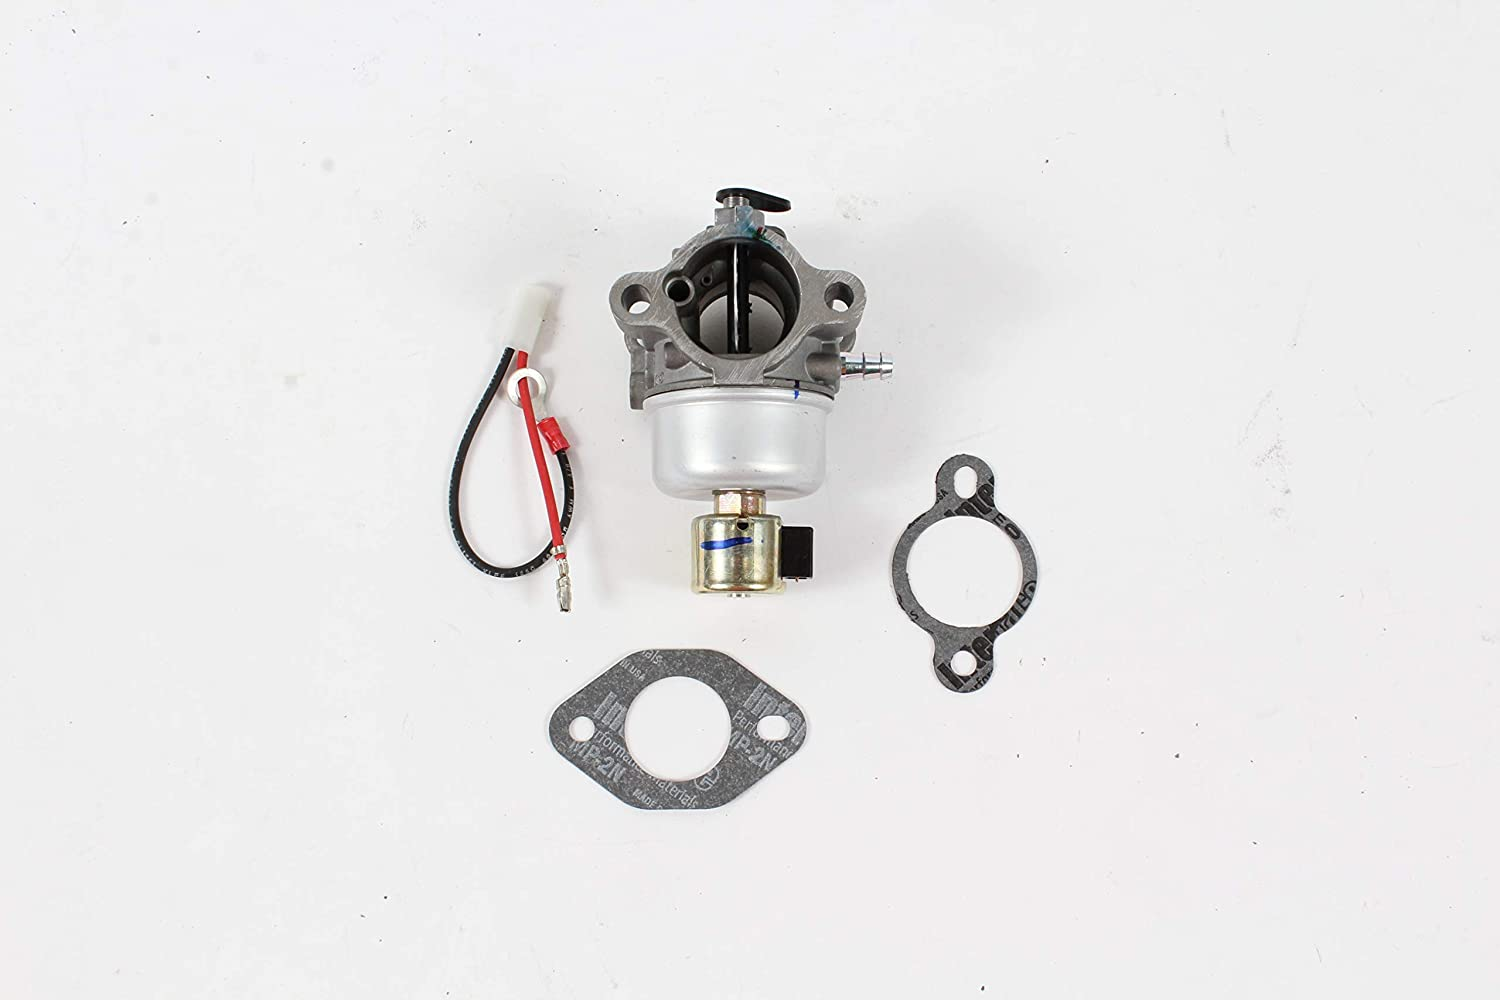 Kohler 20 853 33-S KIT, CARBURETOR